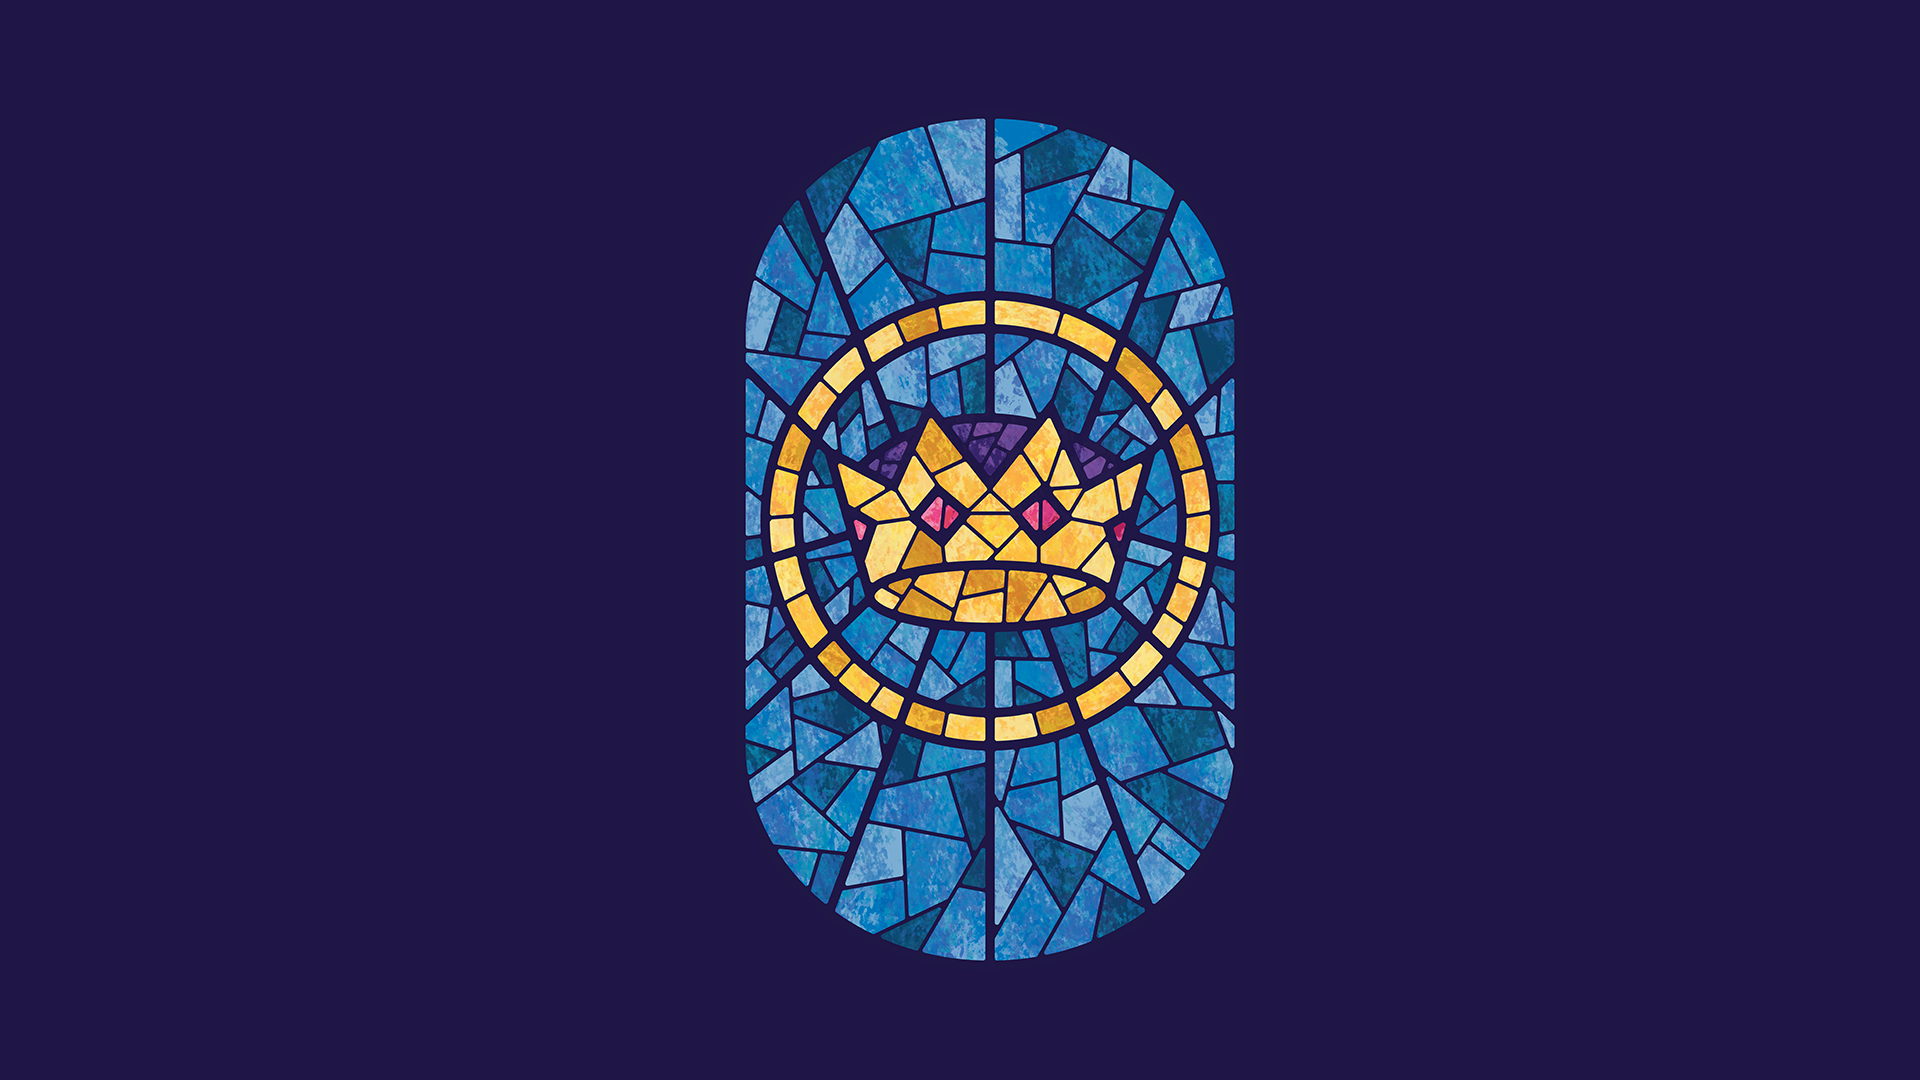 A stained glass style illustration of the crown, representing Christ the coming king.